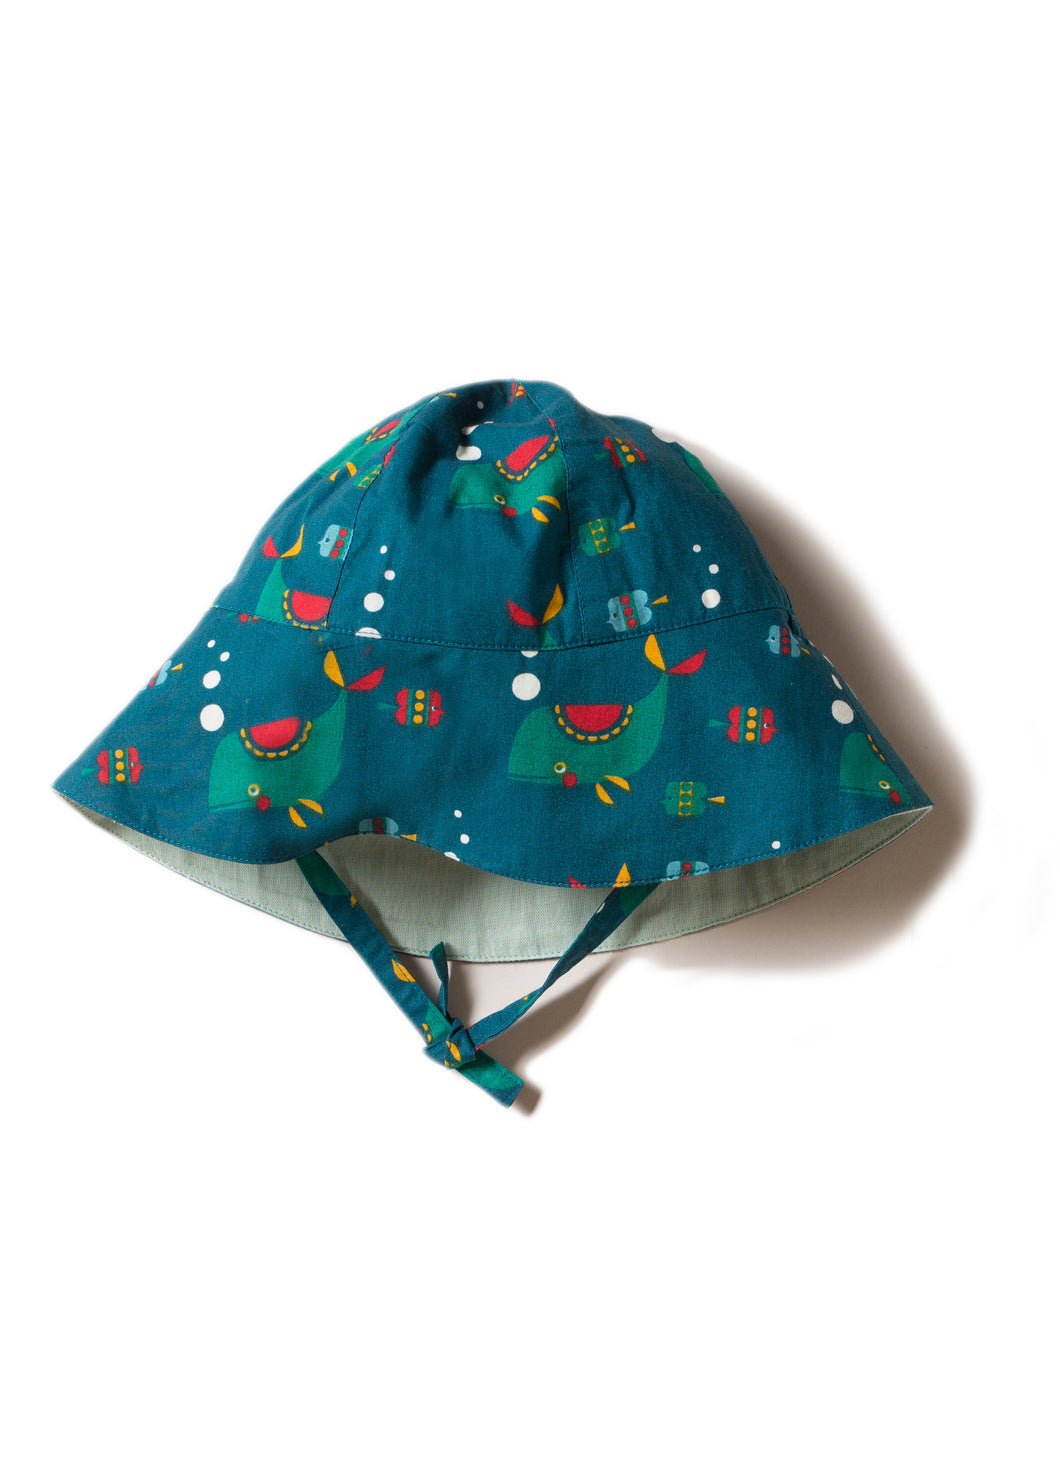 Little Green Radicals Reversible Sunhat in Whale of a Time print